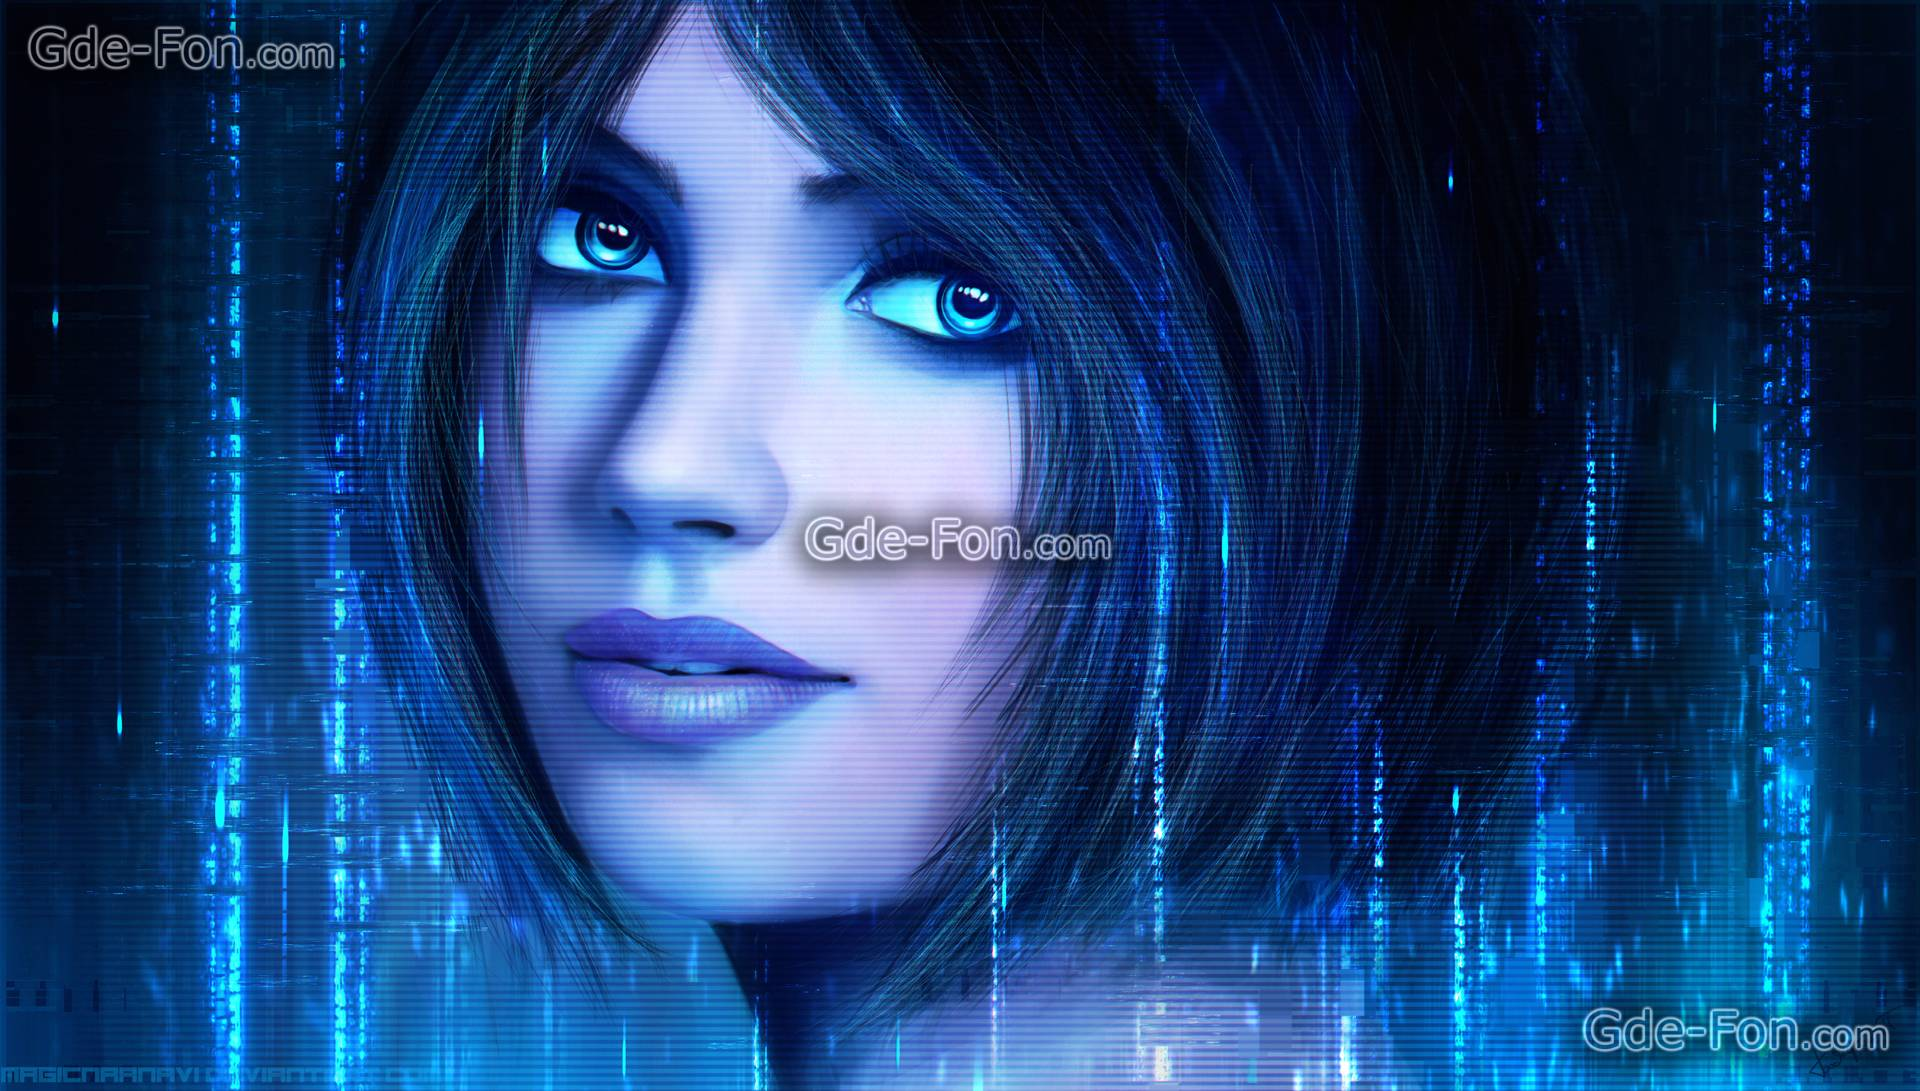 cortana wallpaper2 - photo #5